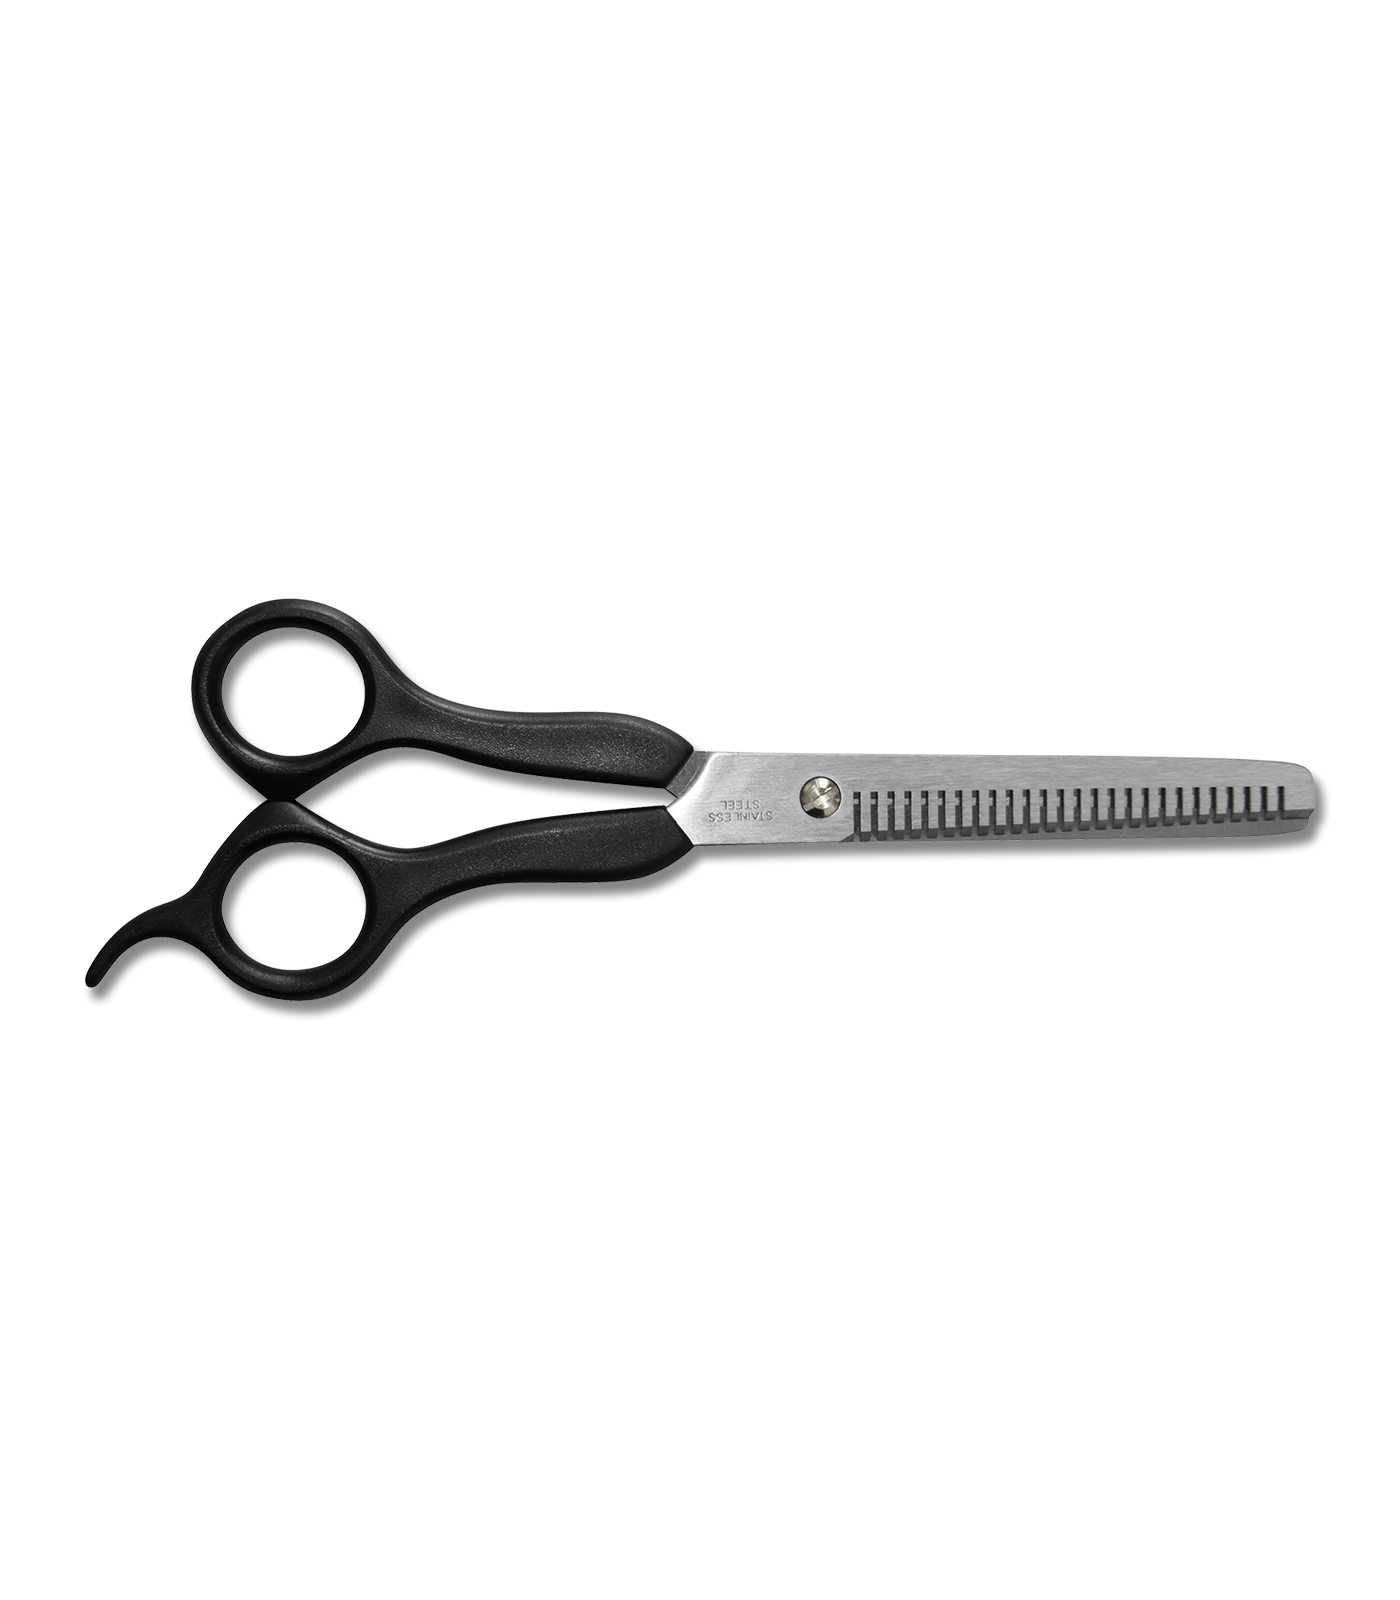 Waldhausen Thinning Scissors